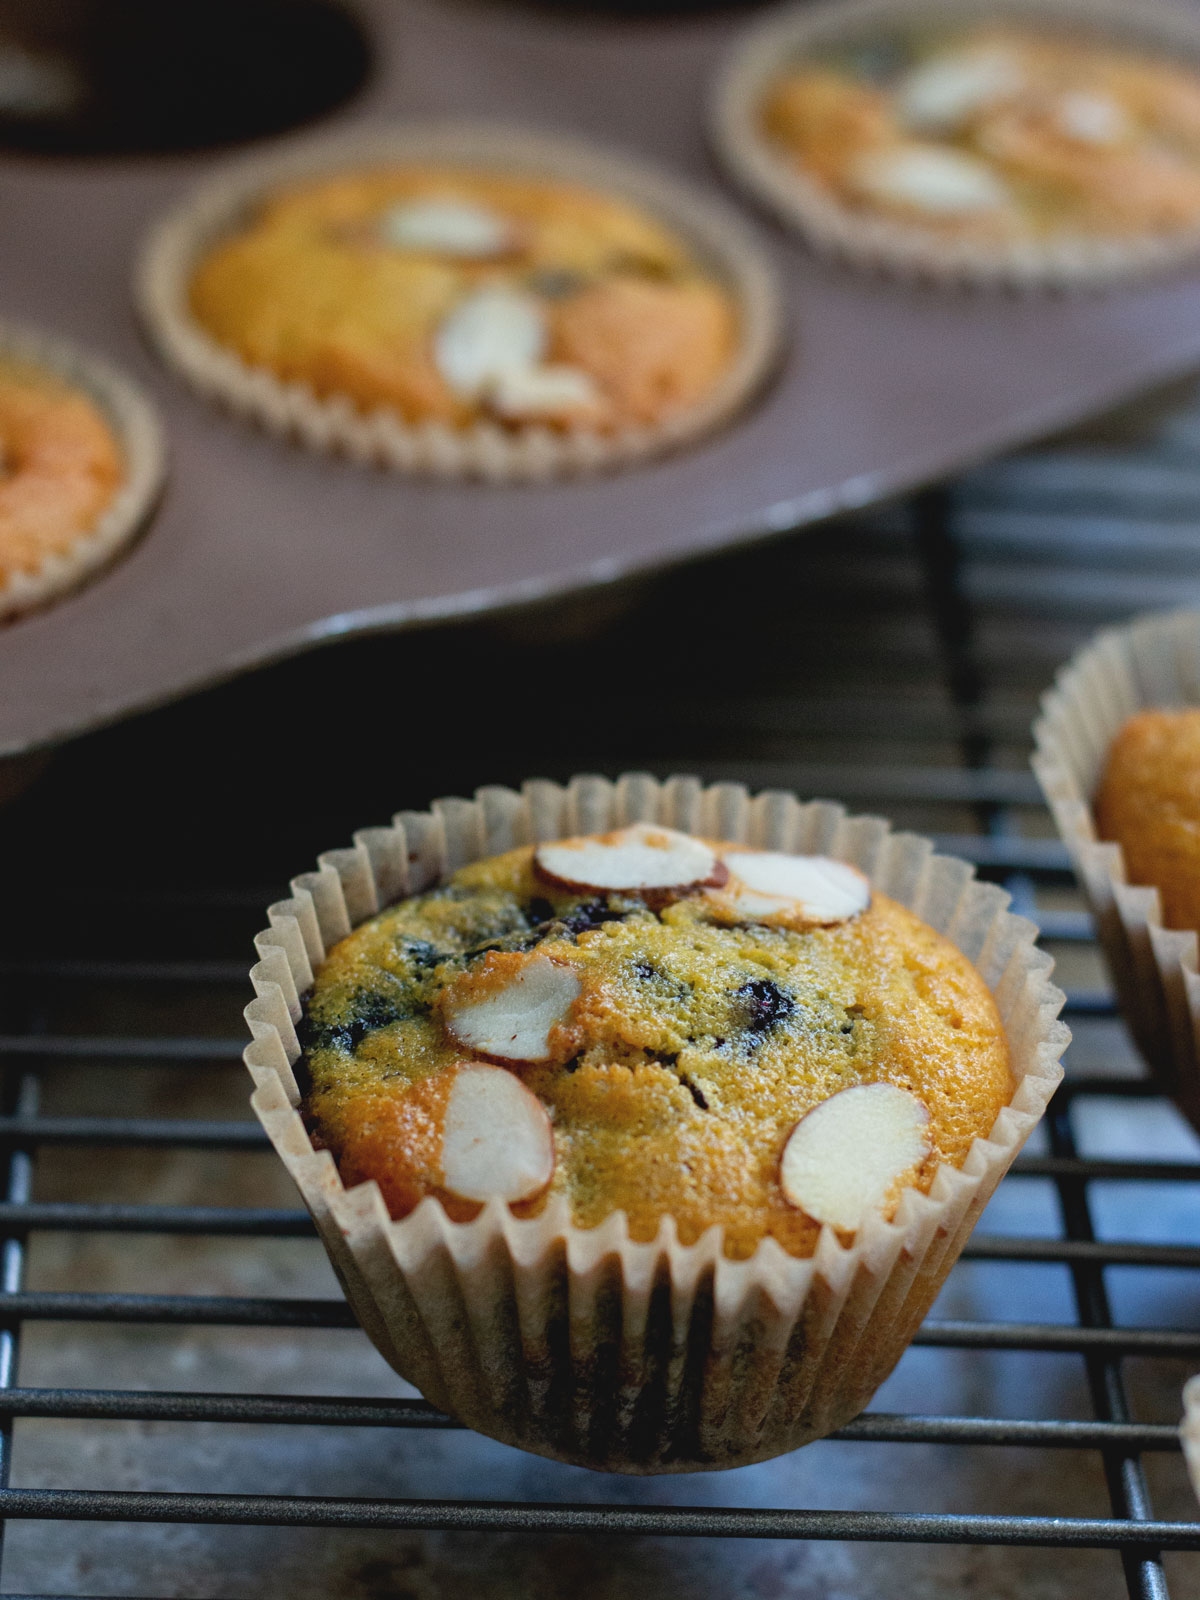 muffins being removed to a cooling rack